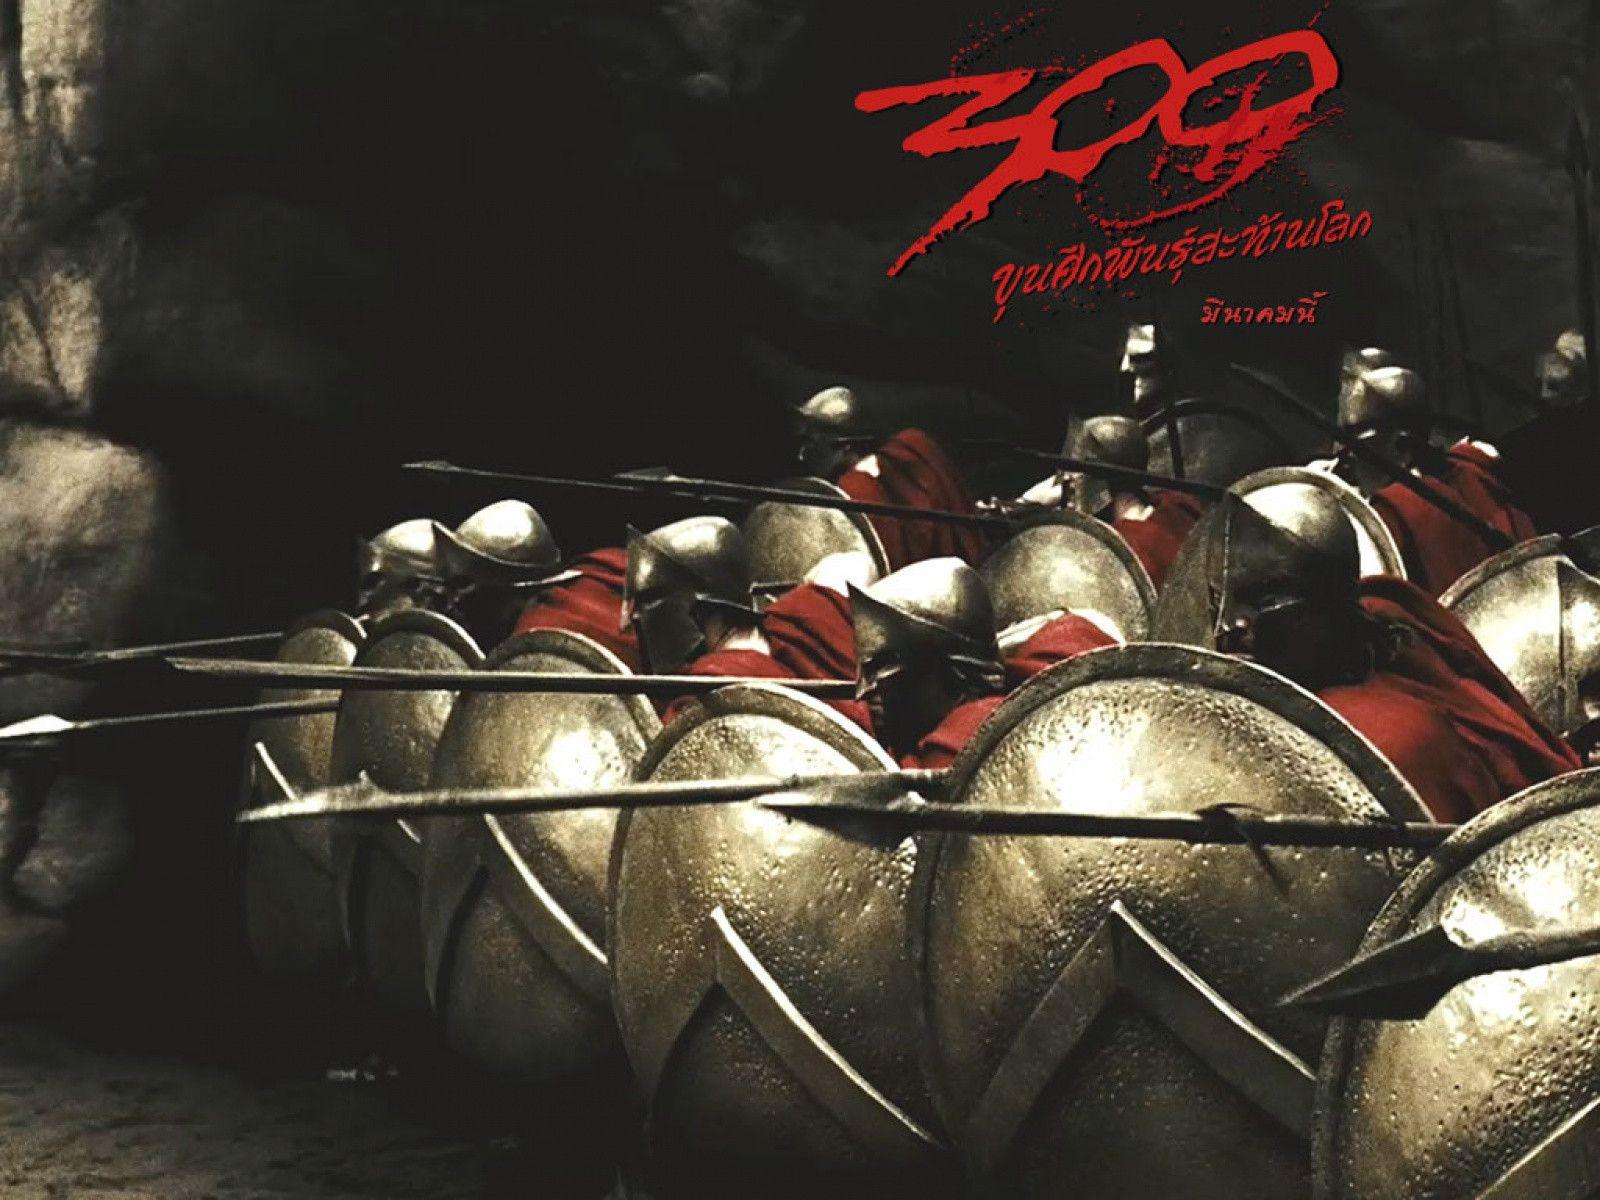 300 spartans wallpaper wallpapers - photo #13